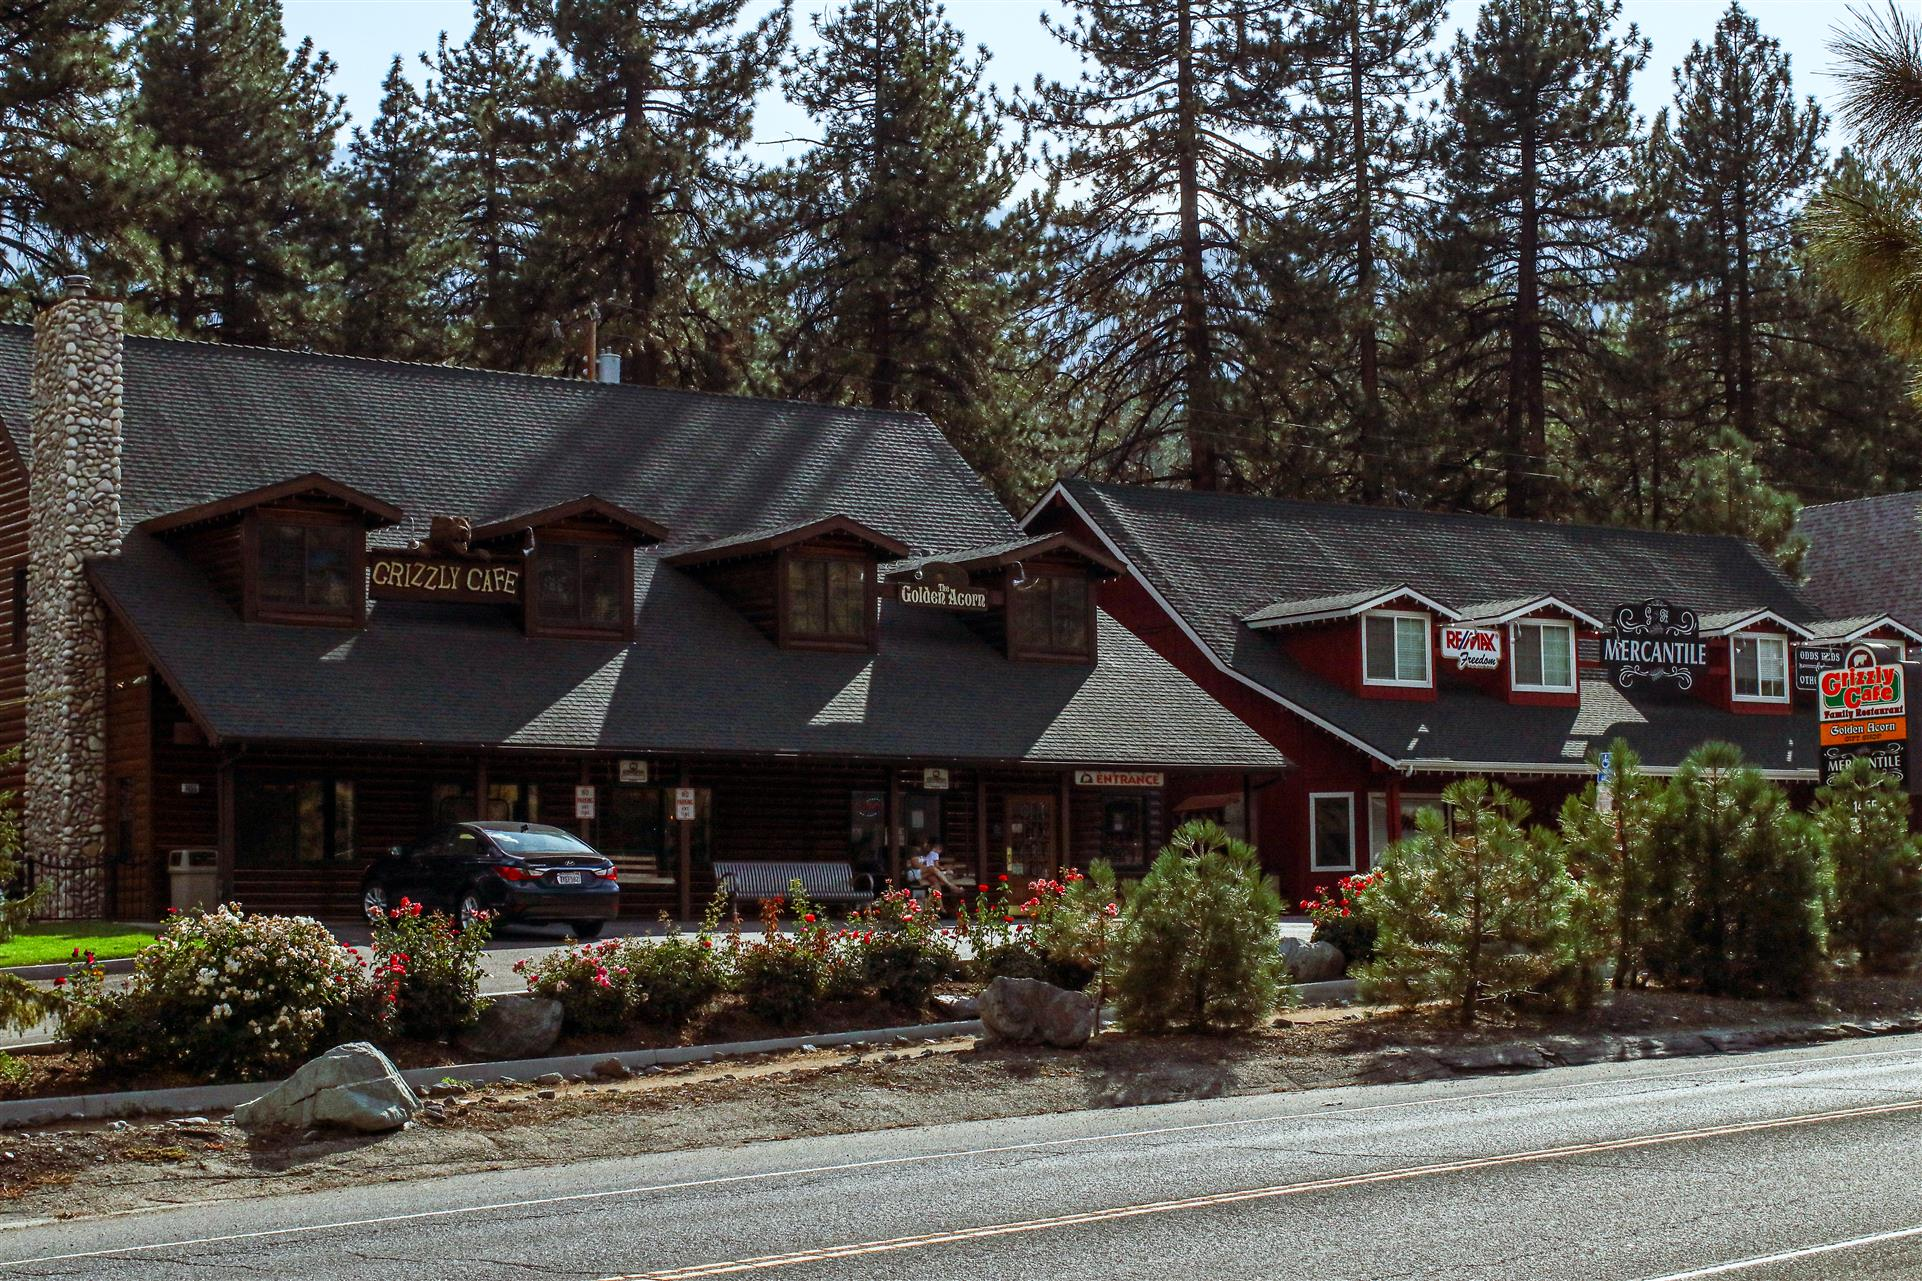 Left Side of Grizzly Cafe on the opposite side of the road